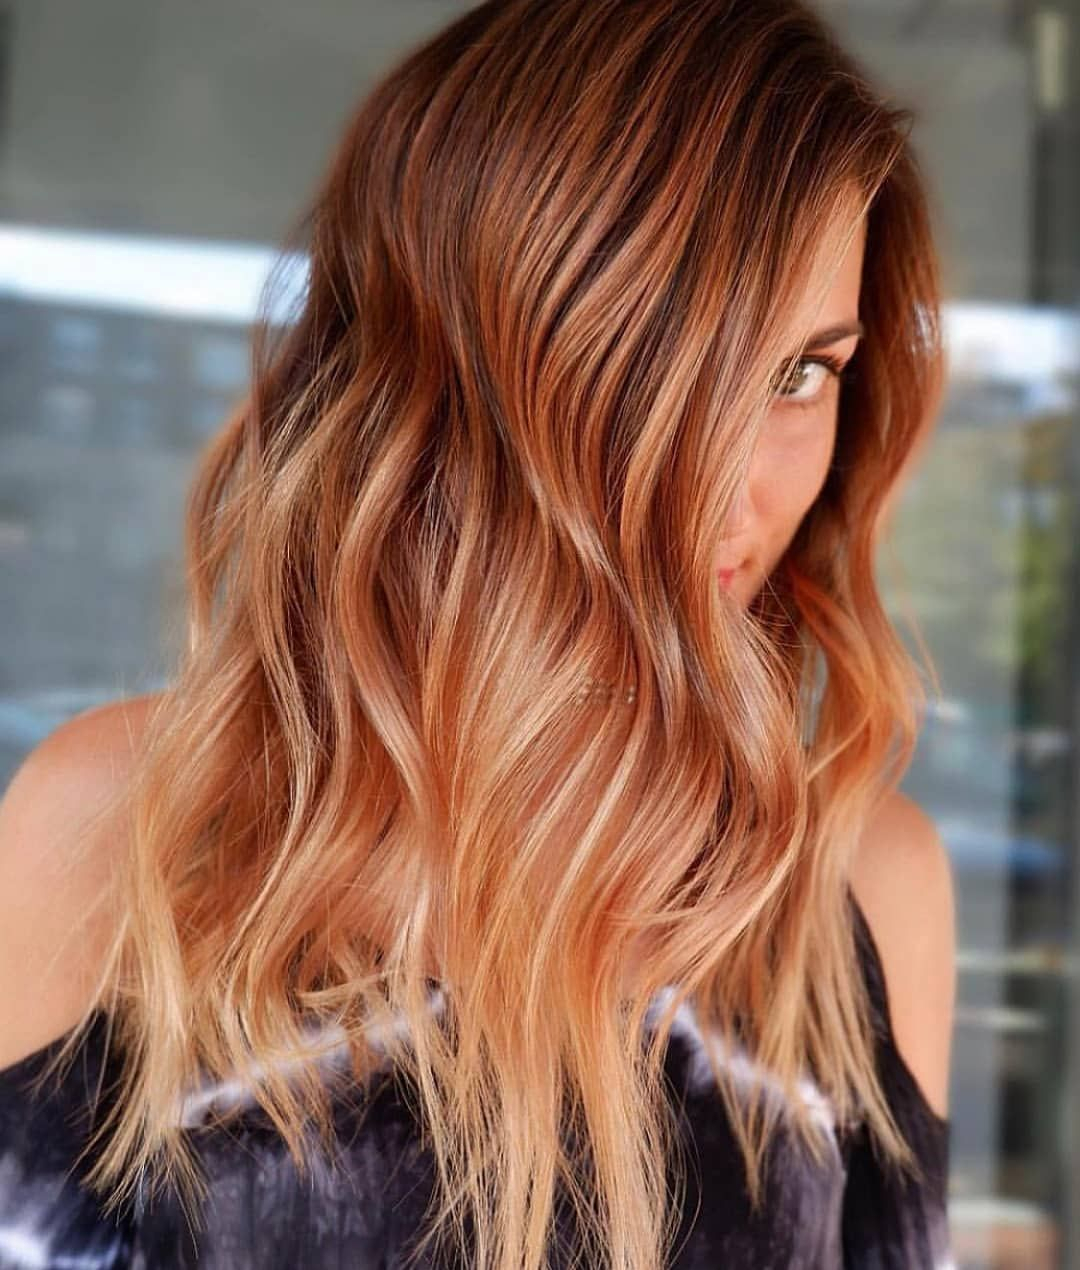 26 stylish and fun hair dye ideas to try in 2019 | hair colors for